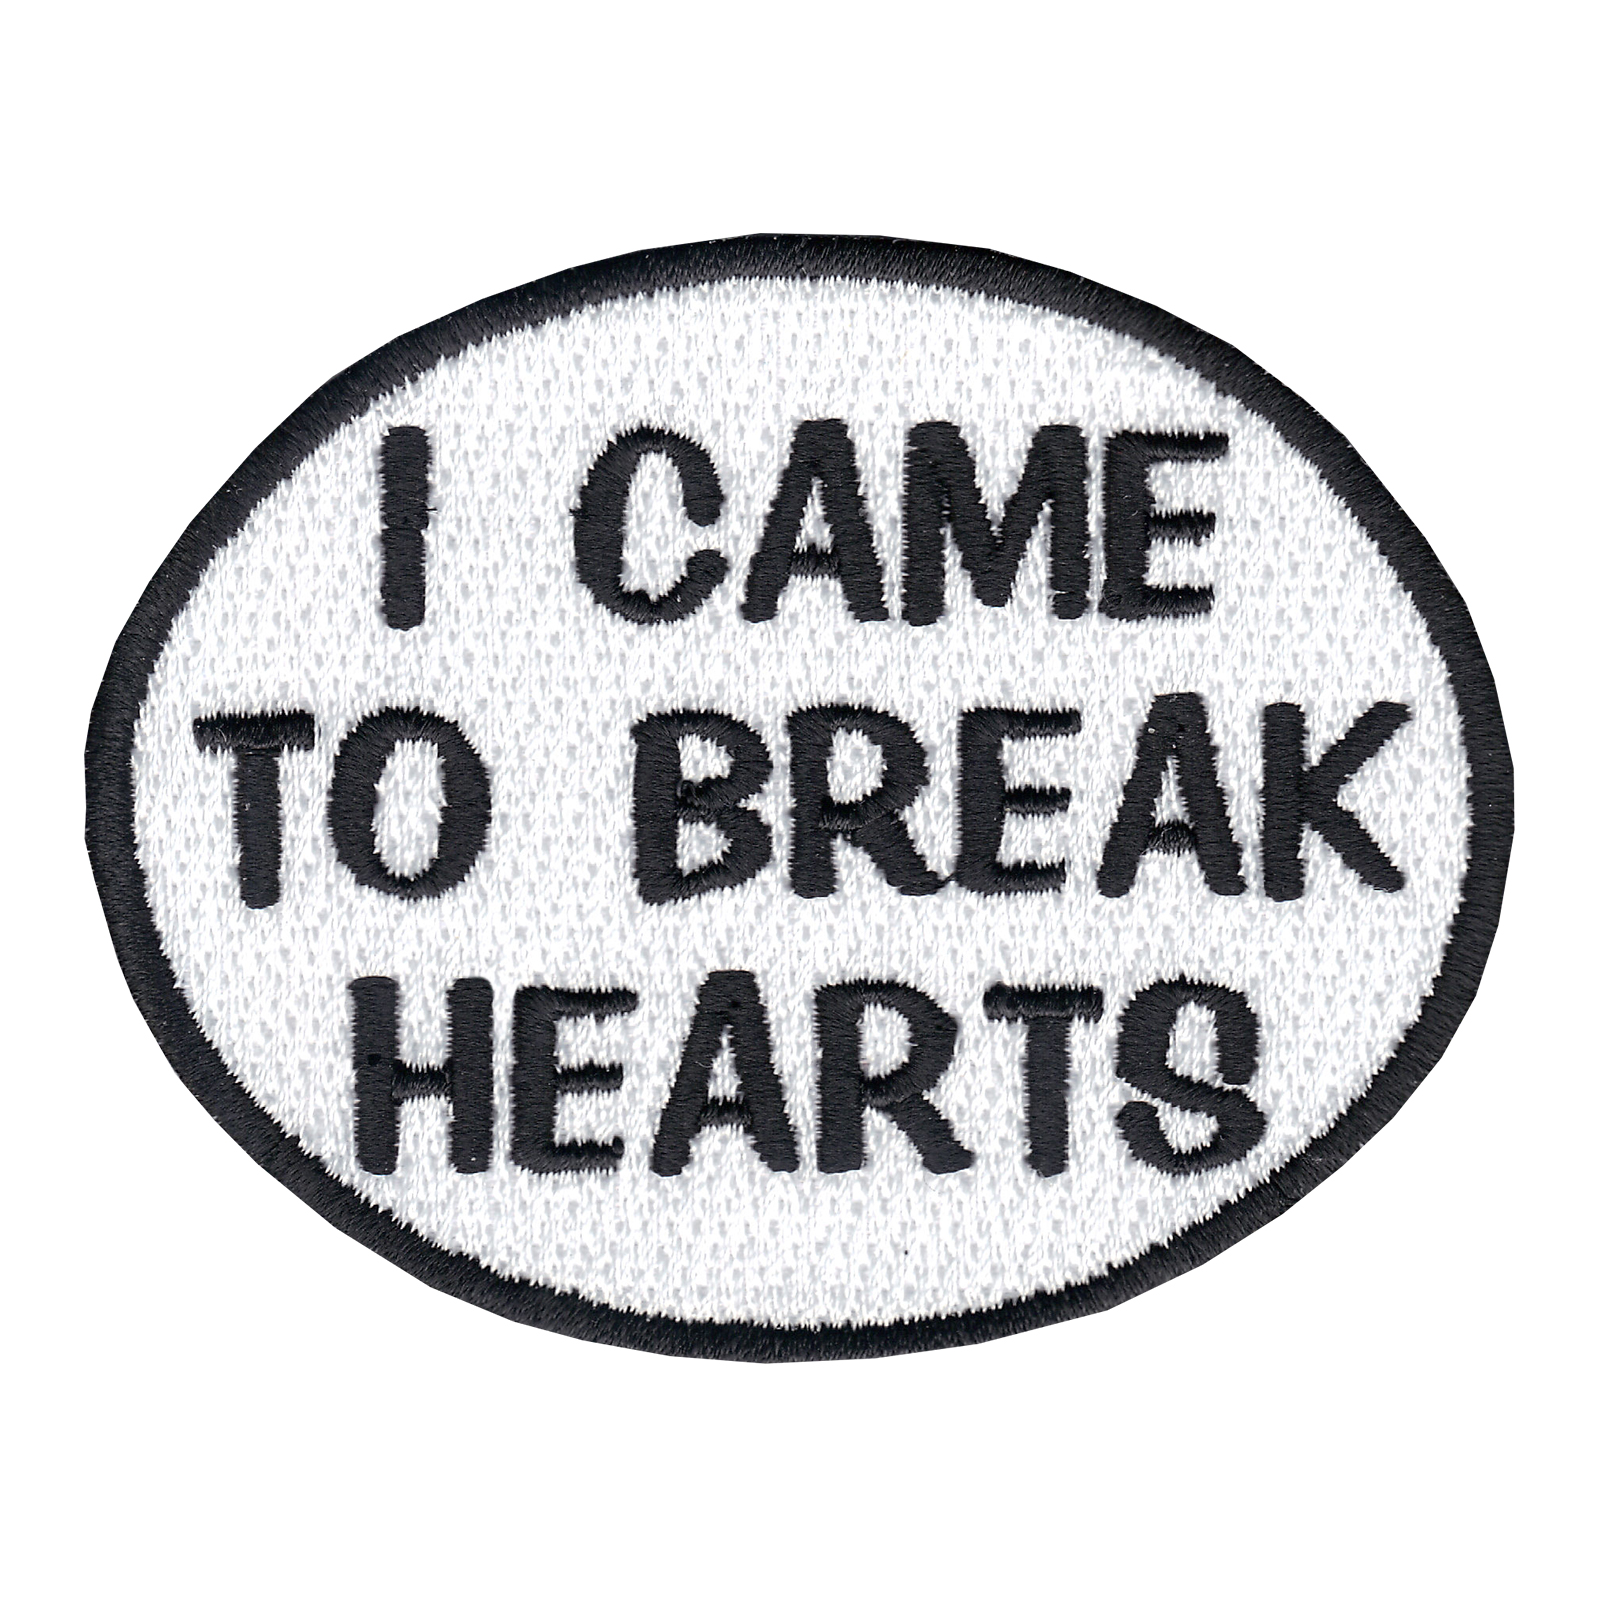 I Came To Break Hearts Oval Iron On Applique Patch